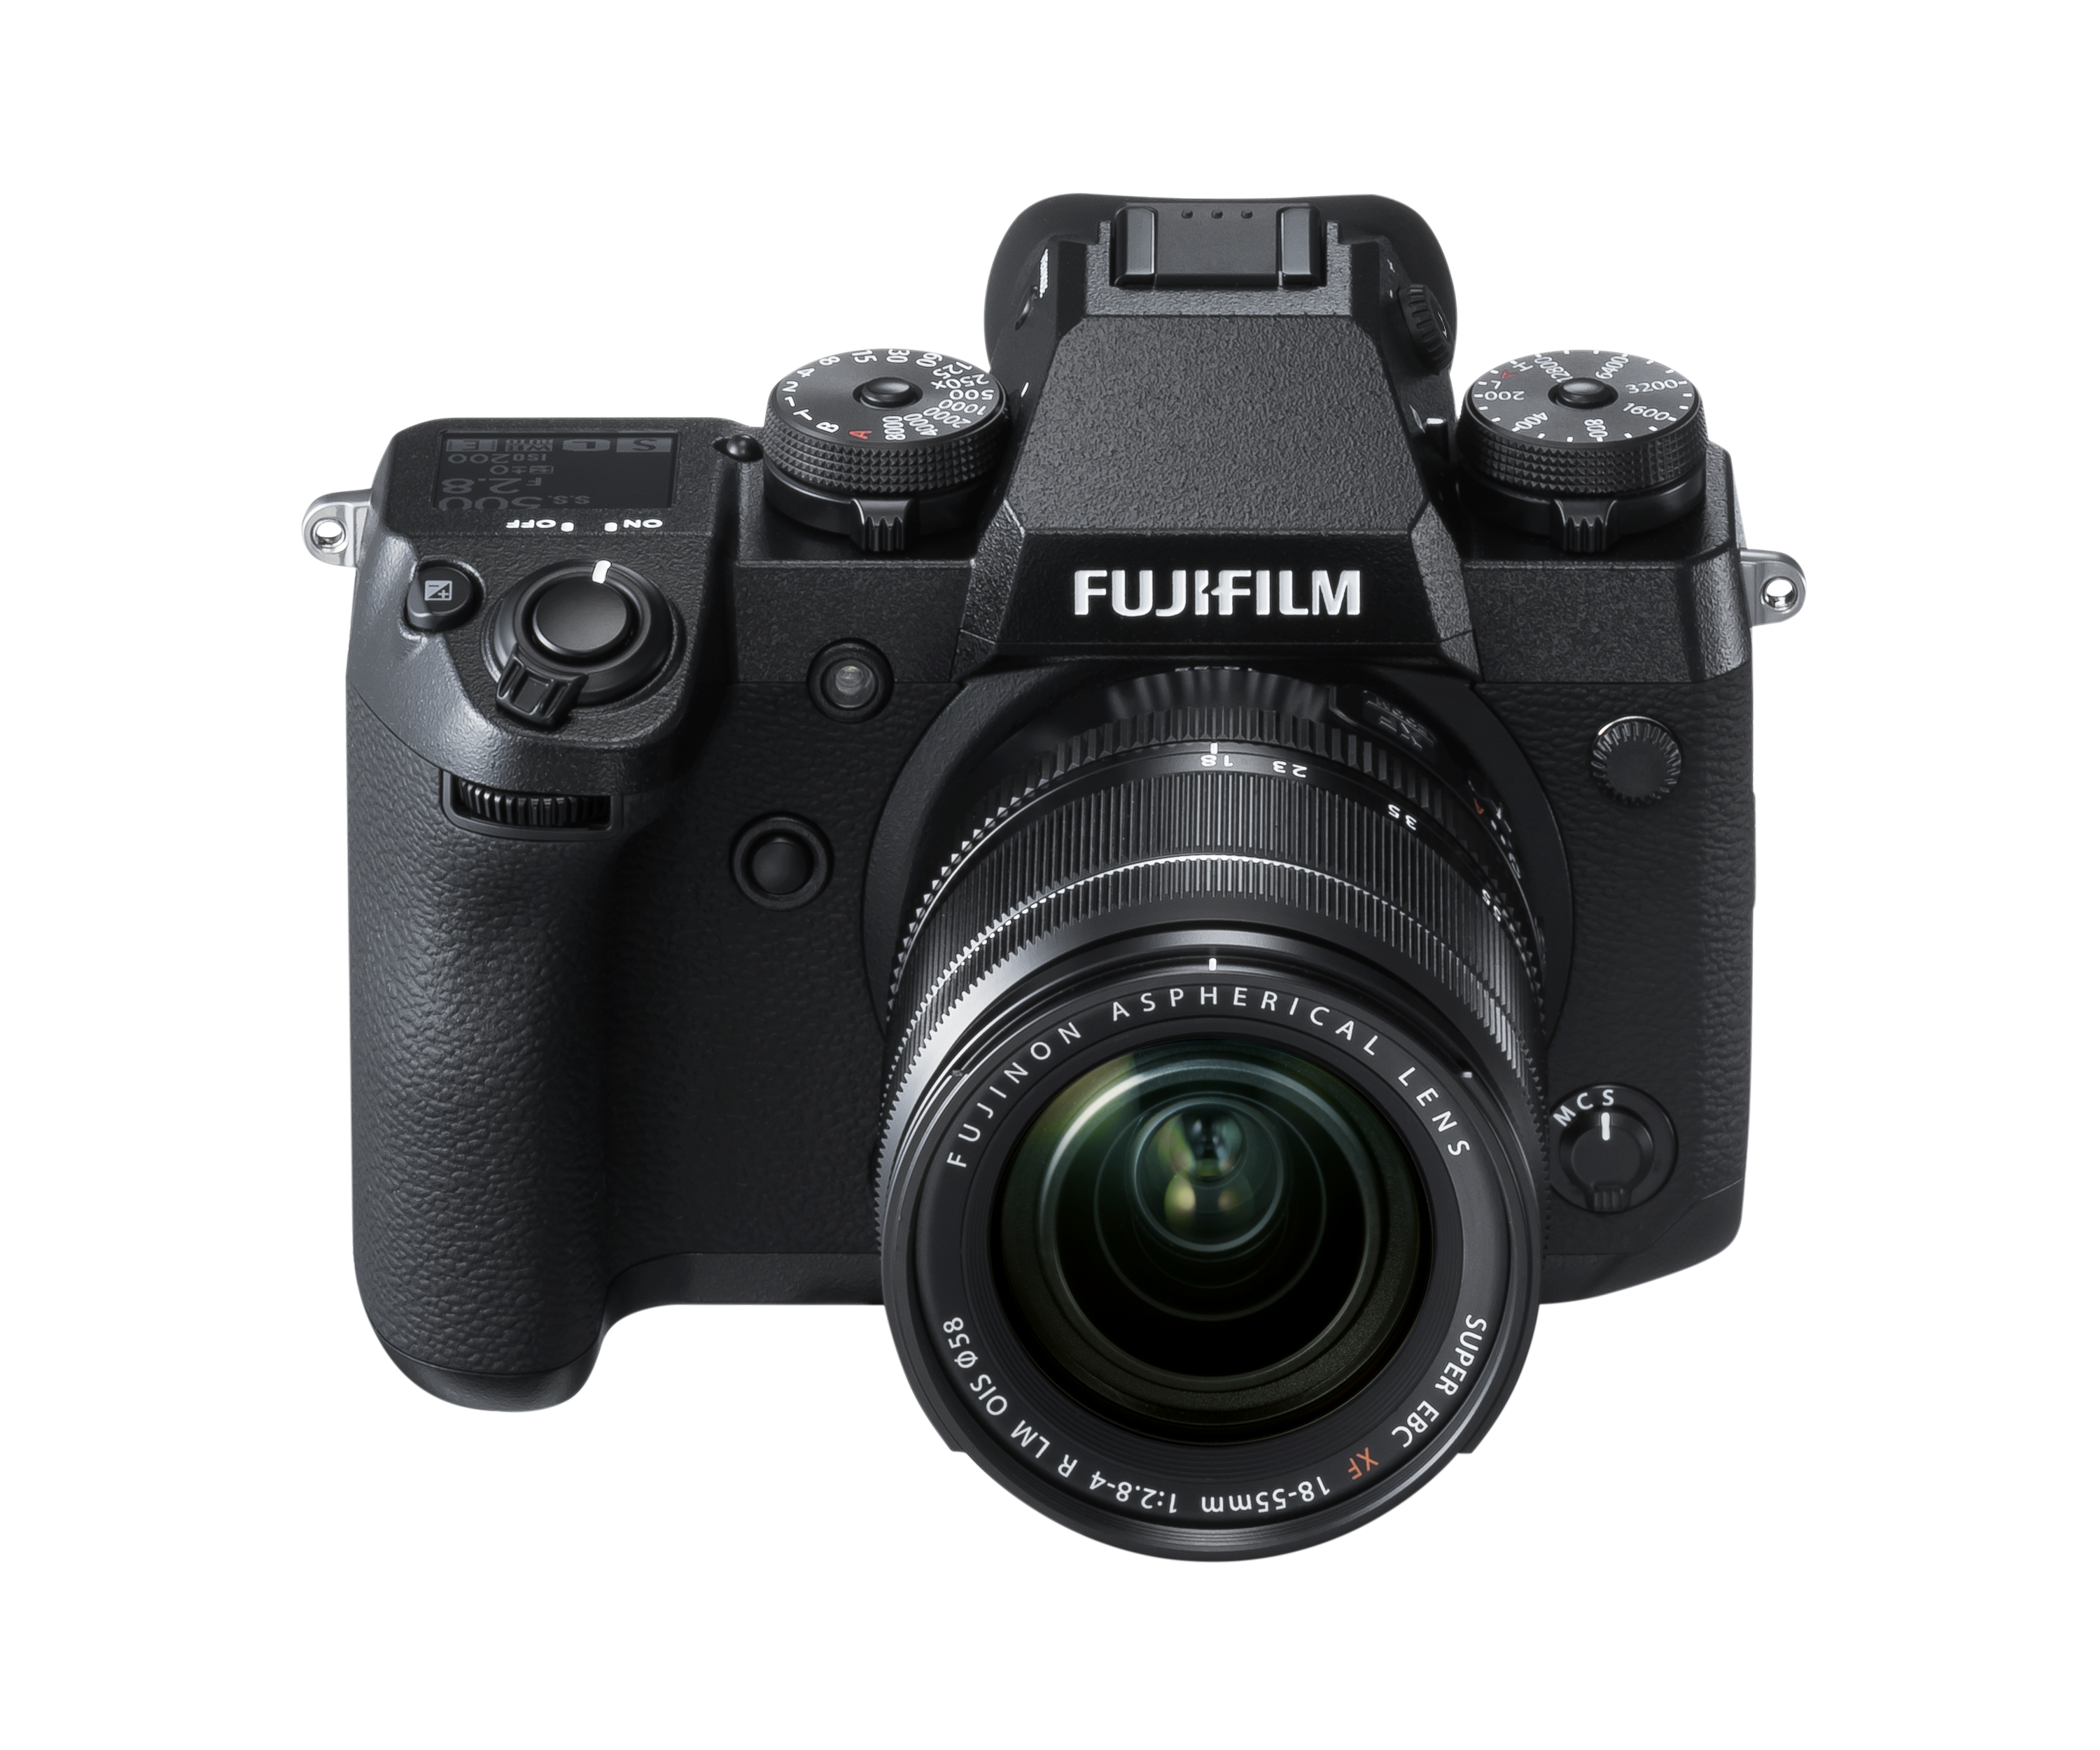 Just Announced: Meet the Brand New Fujifilm X-H1 Mirrorless Camera at Orms, South Africa